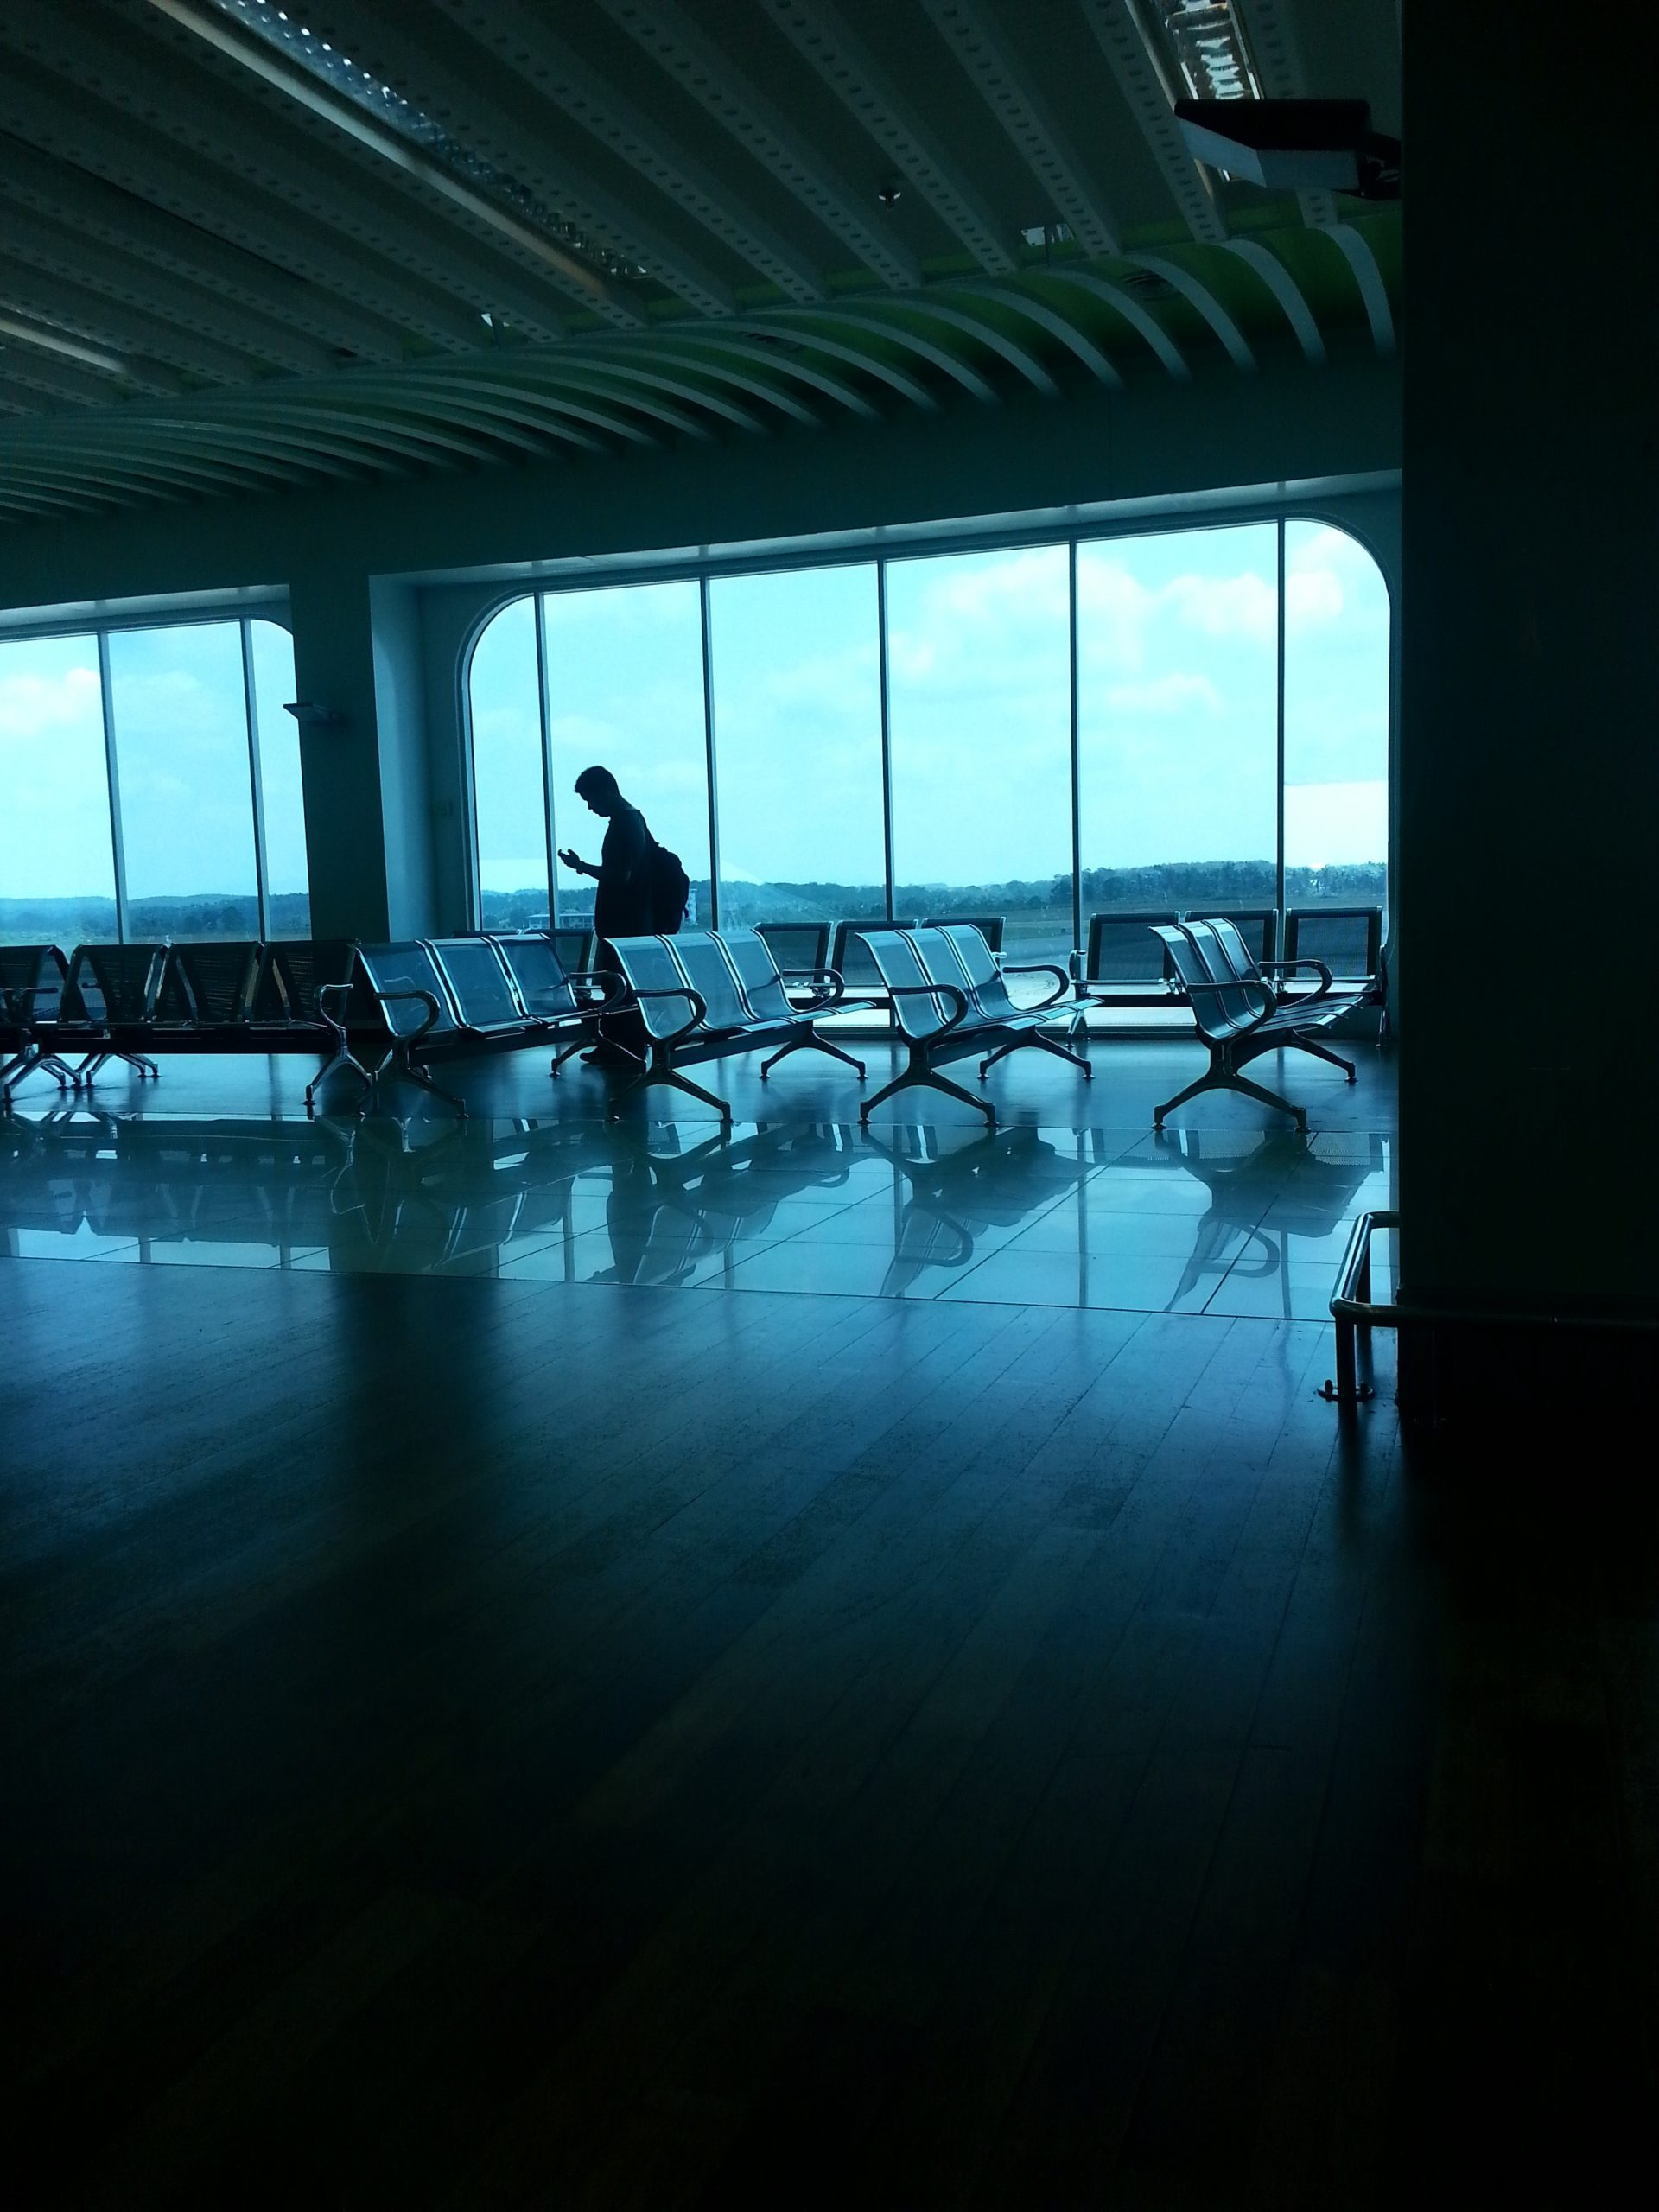 Silhouette of man walking in empty airport waiting area